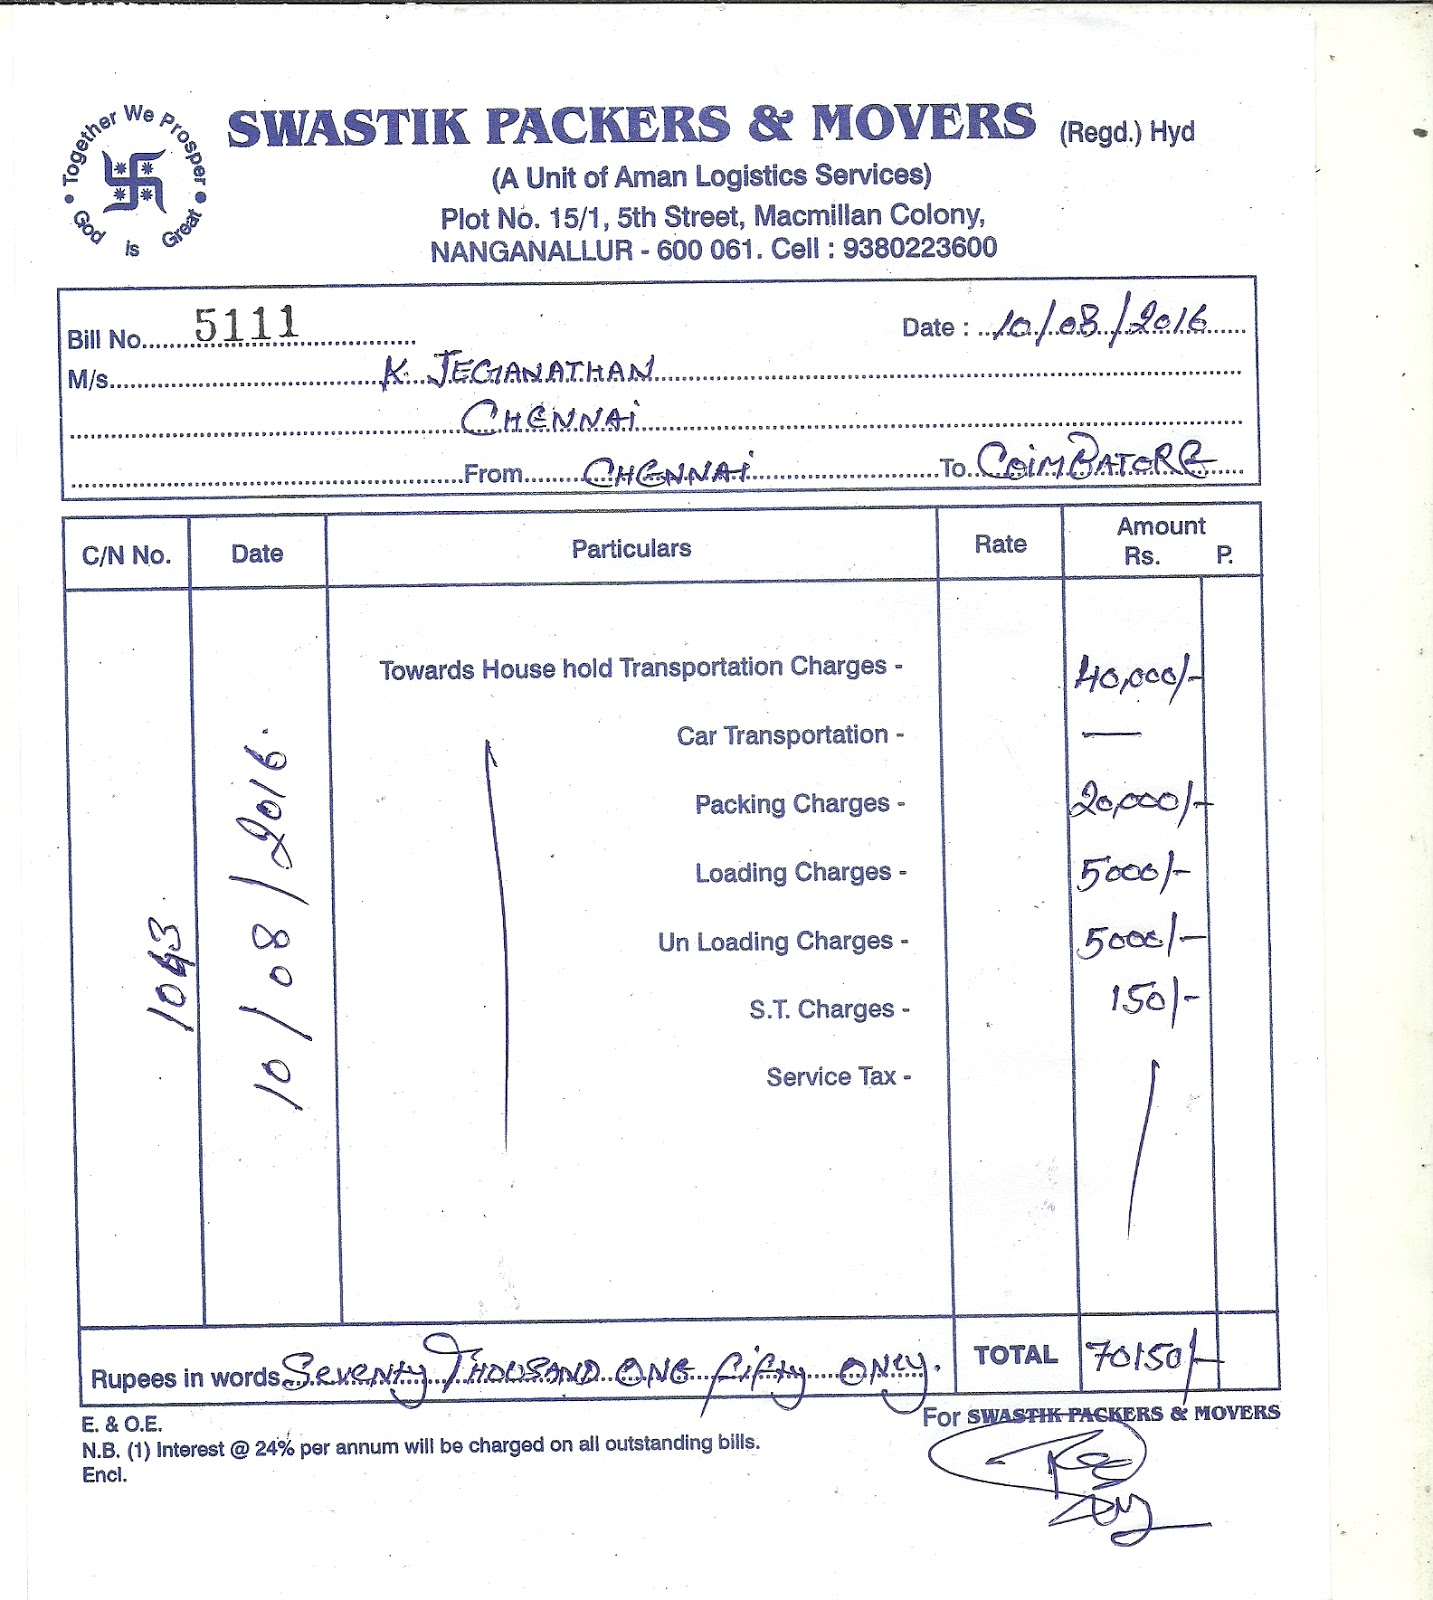 Packers and movers invoice pdf